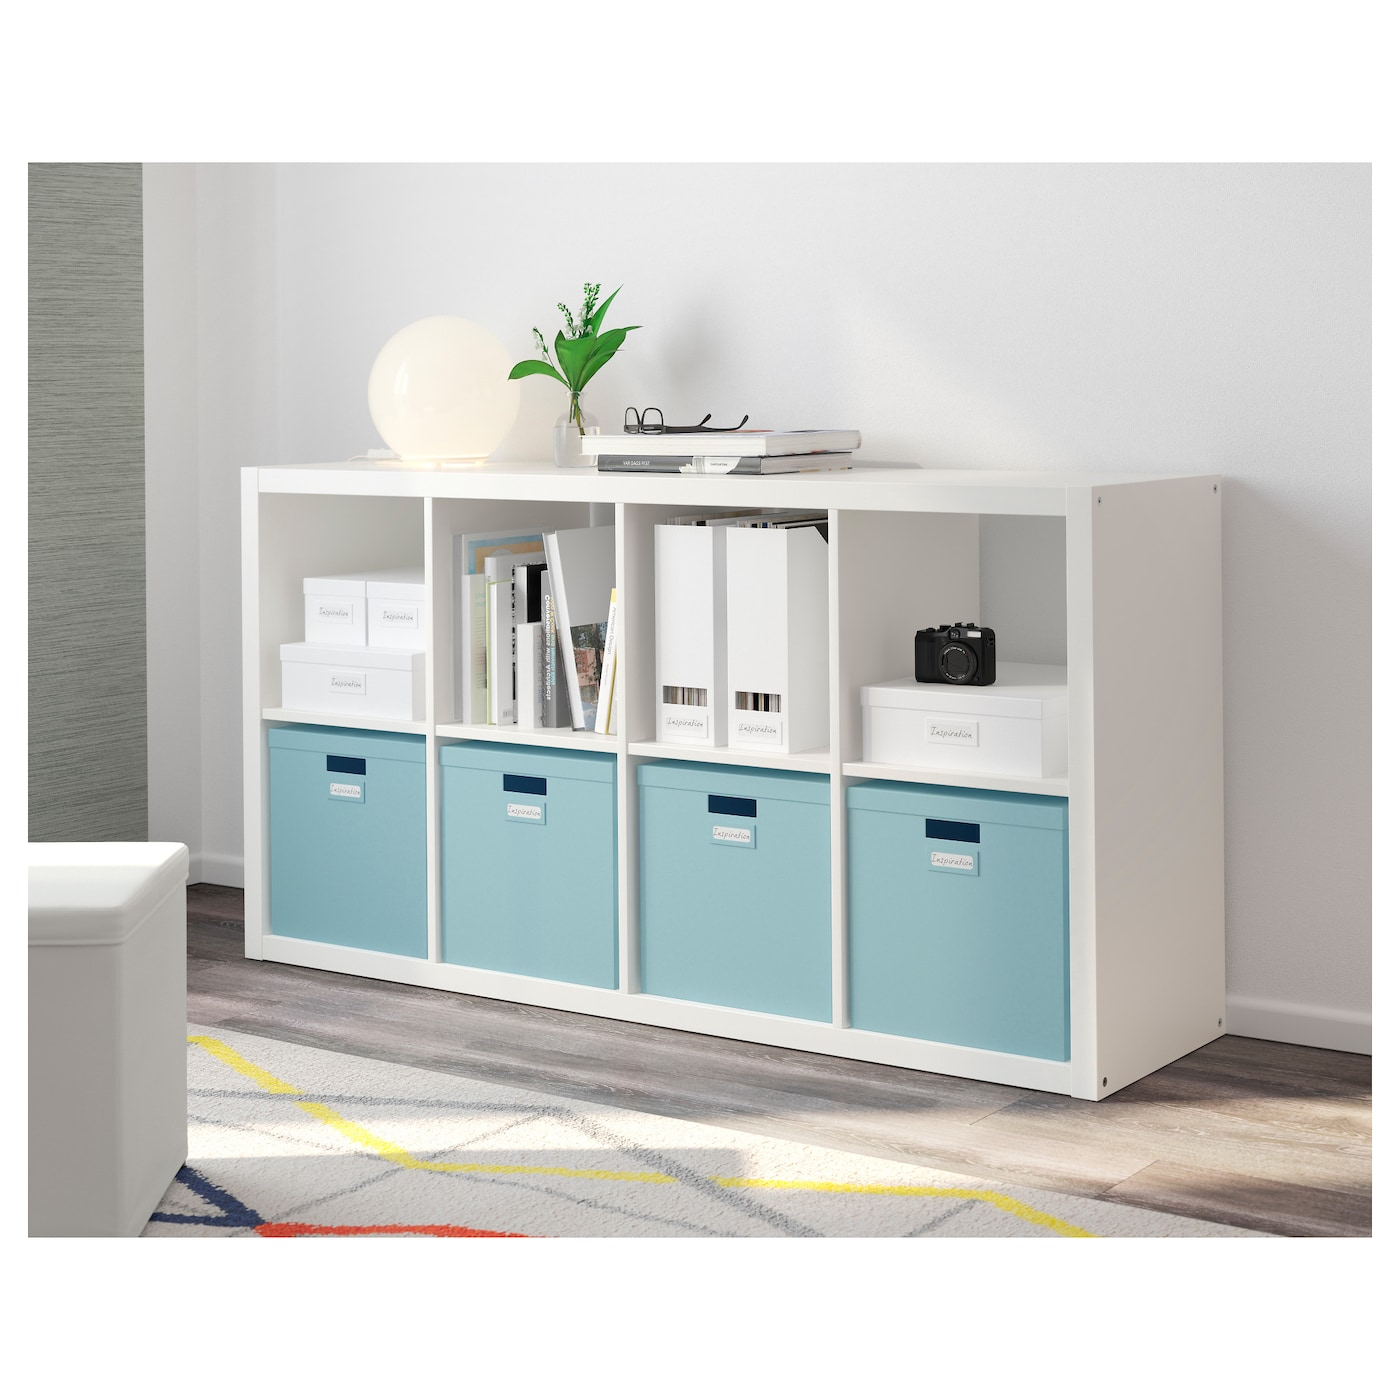 tjena box with lid light blue 32x35x32 cm ikea. Black Bedroom Furniture Sets. Home Design Ideas